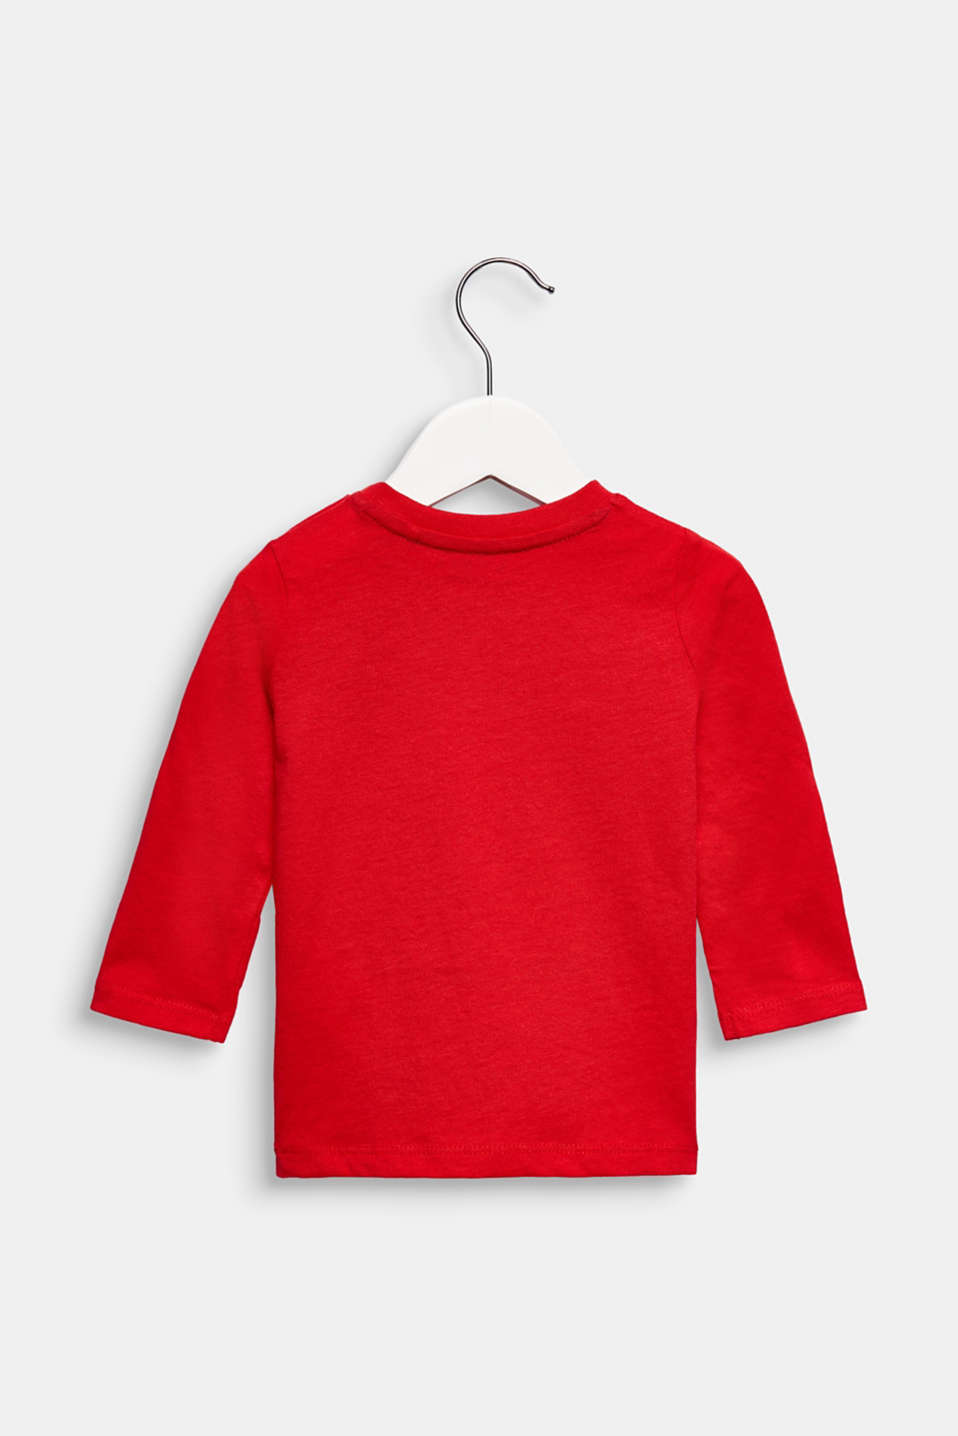 Printed long sleeve top, 100% cotton, LCRED, detail image number 1